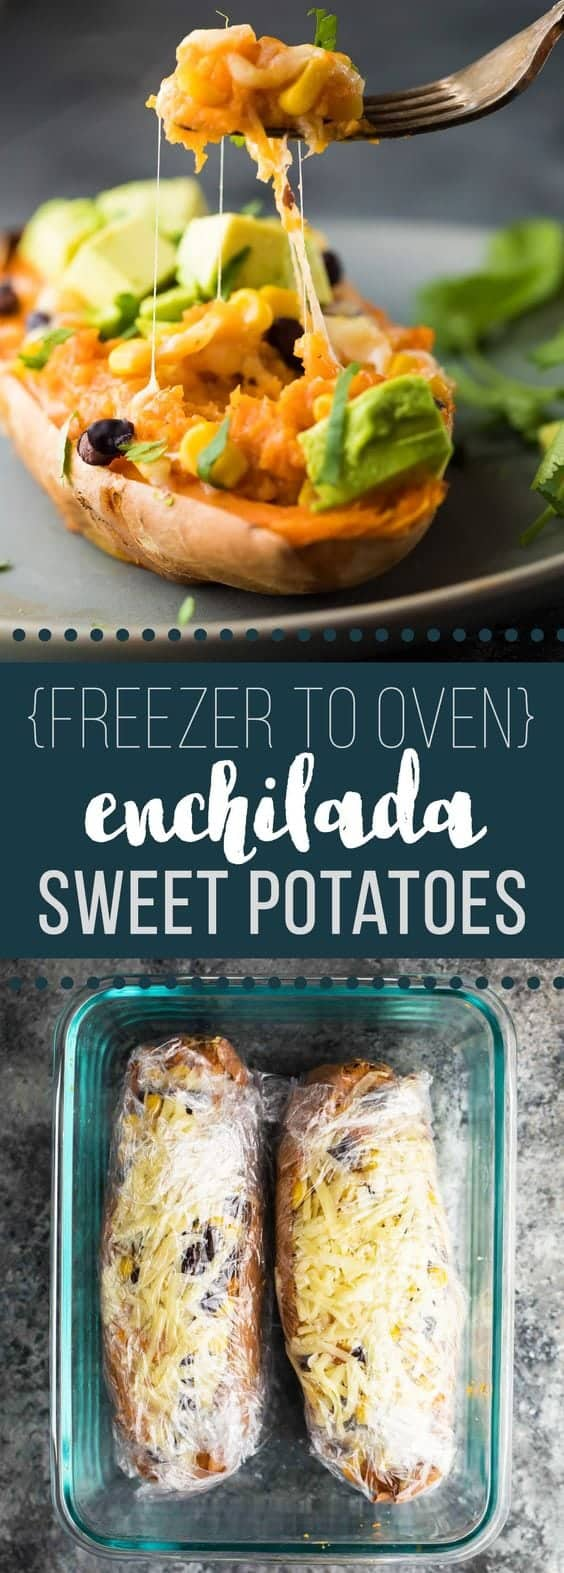 Enchilada Stuffed Sweet Potatoes that can go directly from the freezer into your oven! Make them ahead for an easy (vegetarian and gluten free) meal prep lunch or dinner. #mealprep #vegetarian #sweetpotatoes #freezermeals #sweetpeasandsaffron #glutenfree